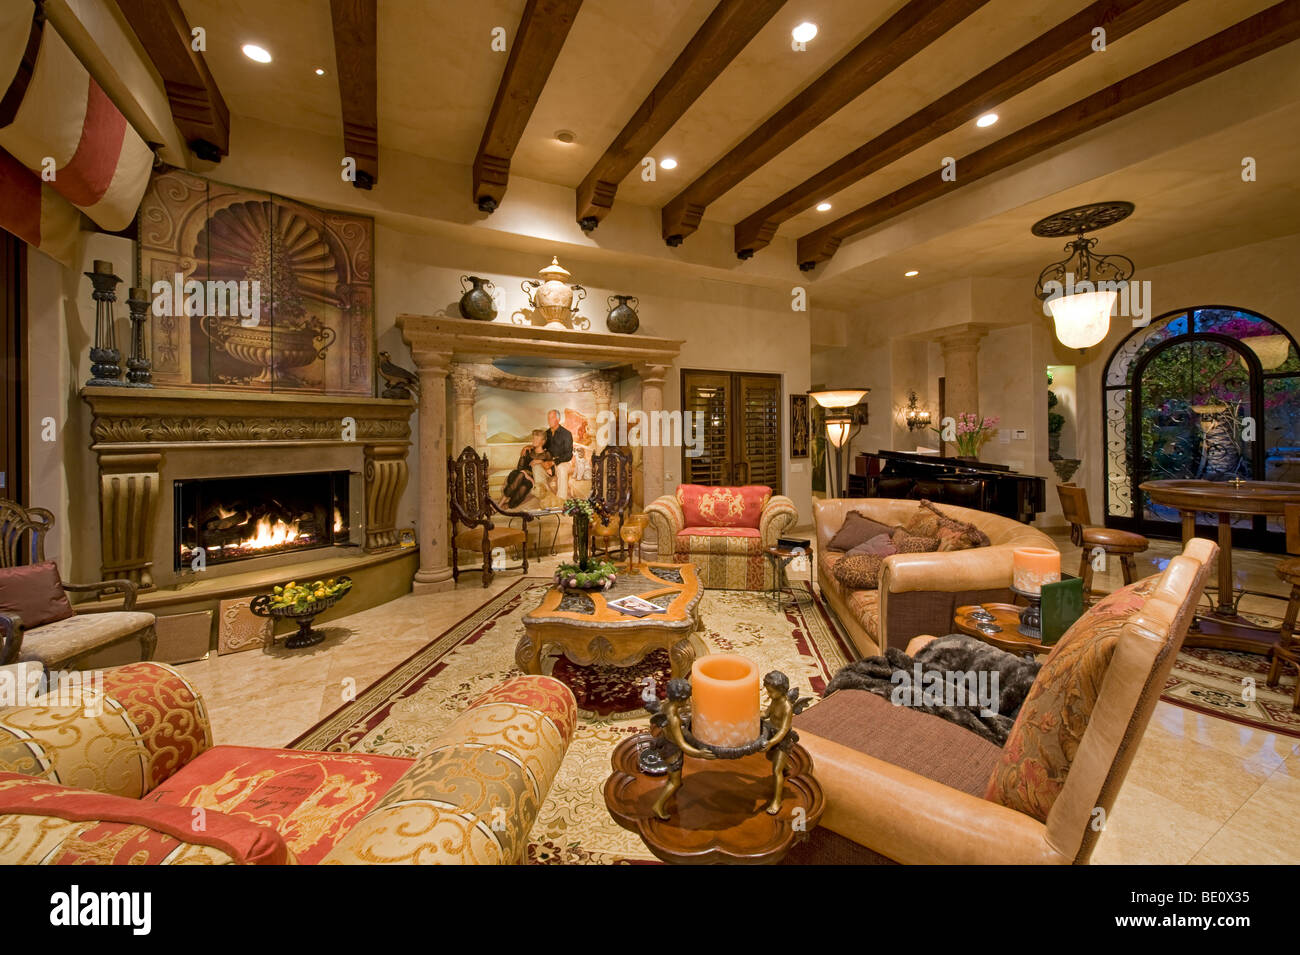 Lavishly decorated living room shows ornate wood carving textiles